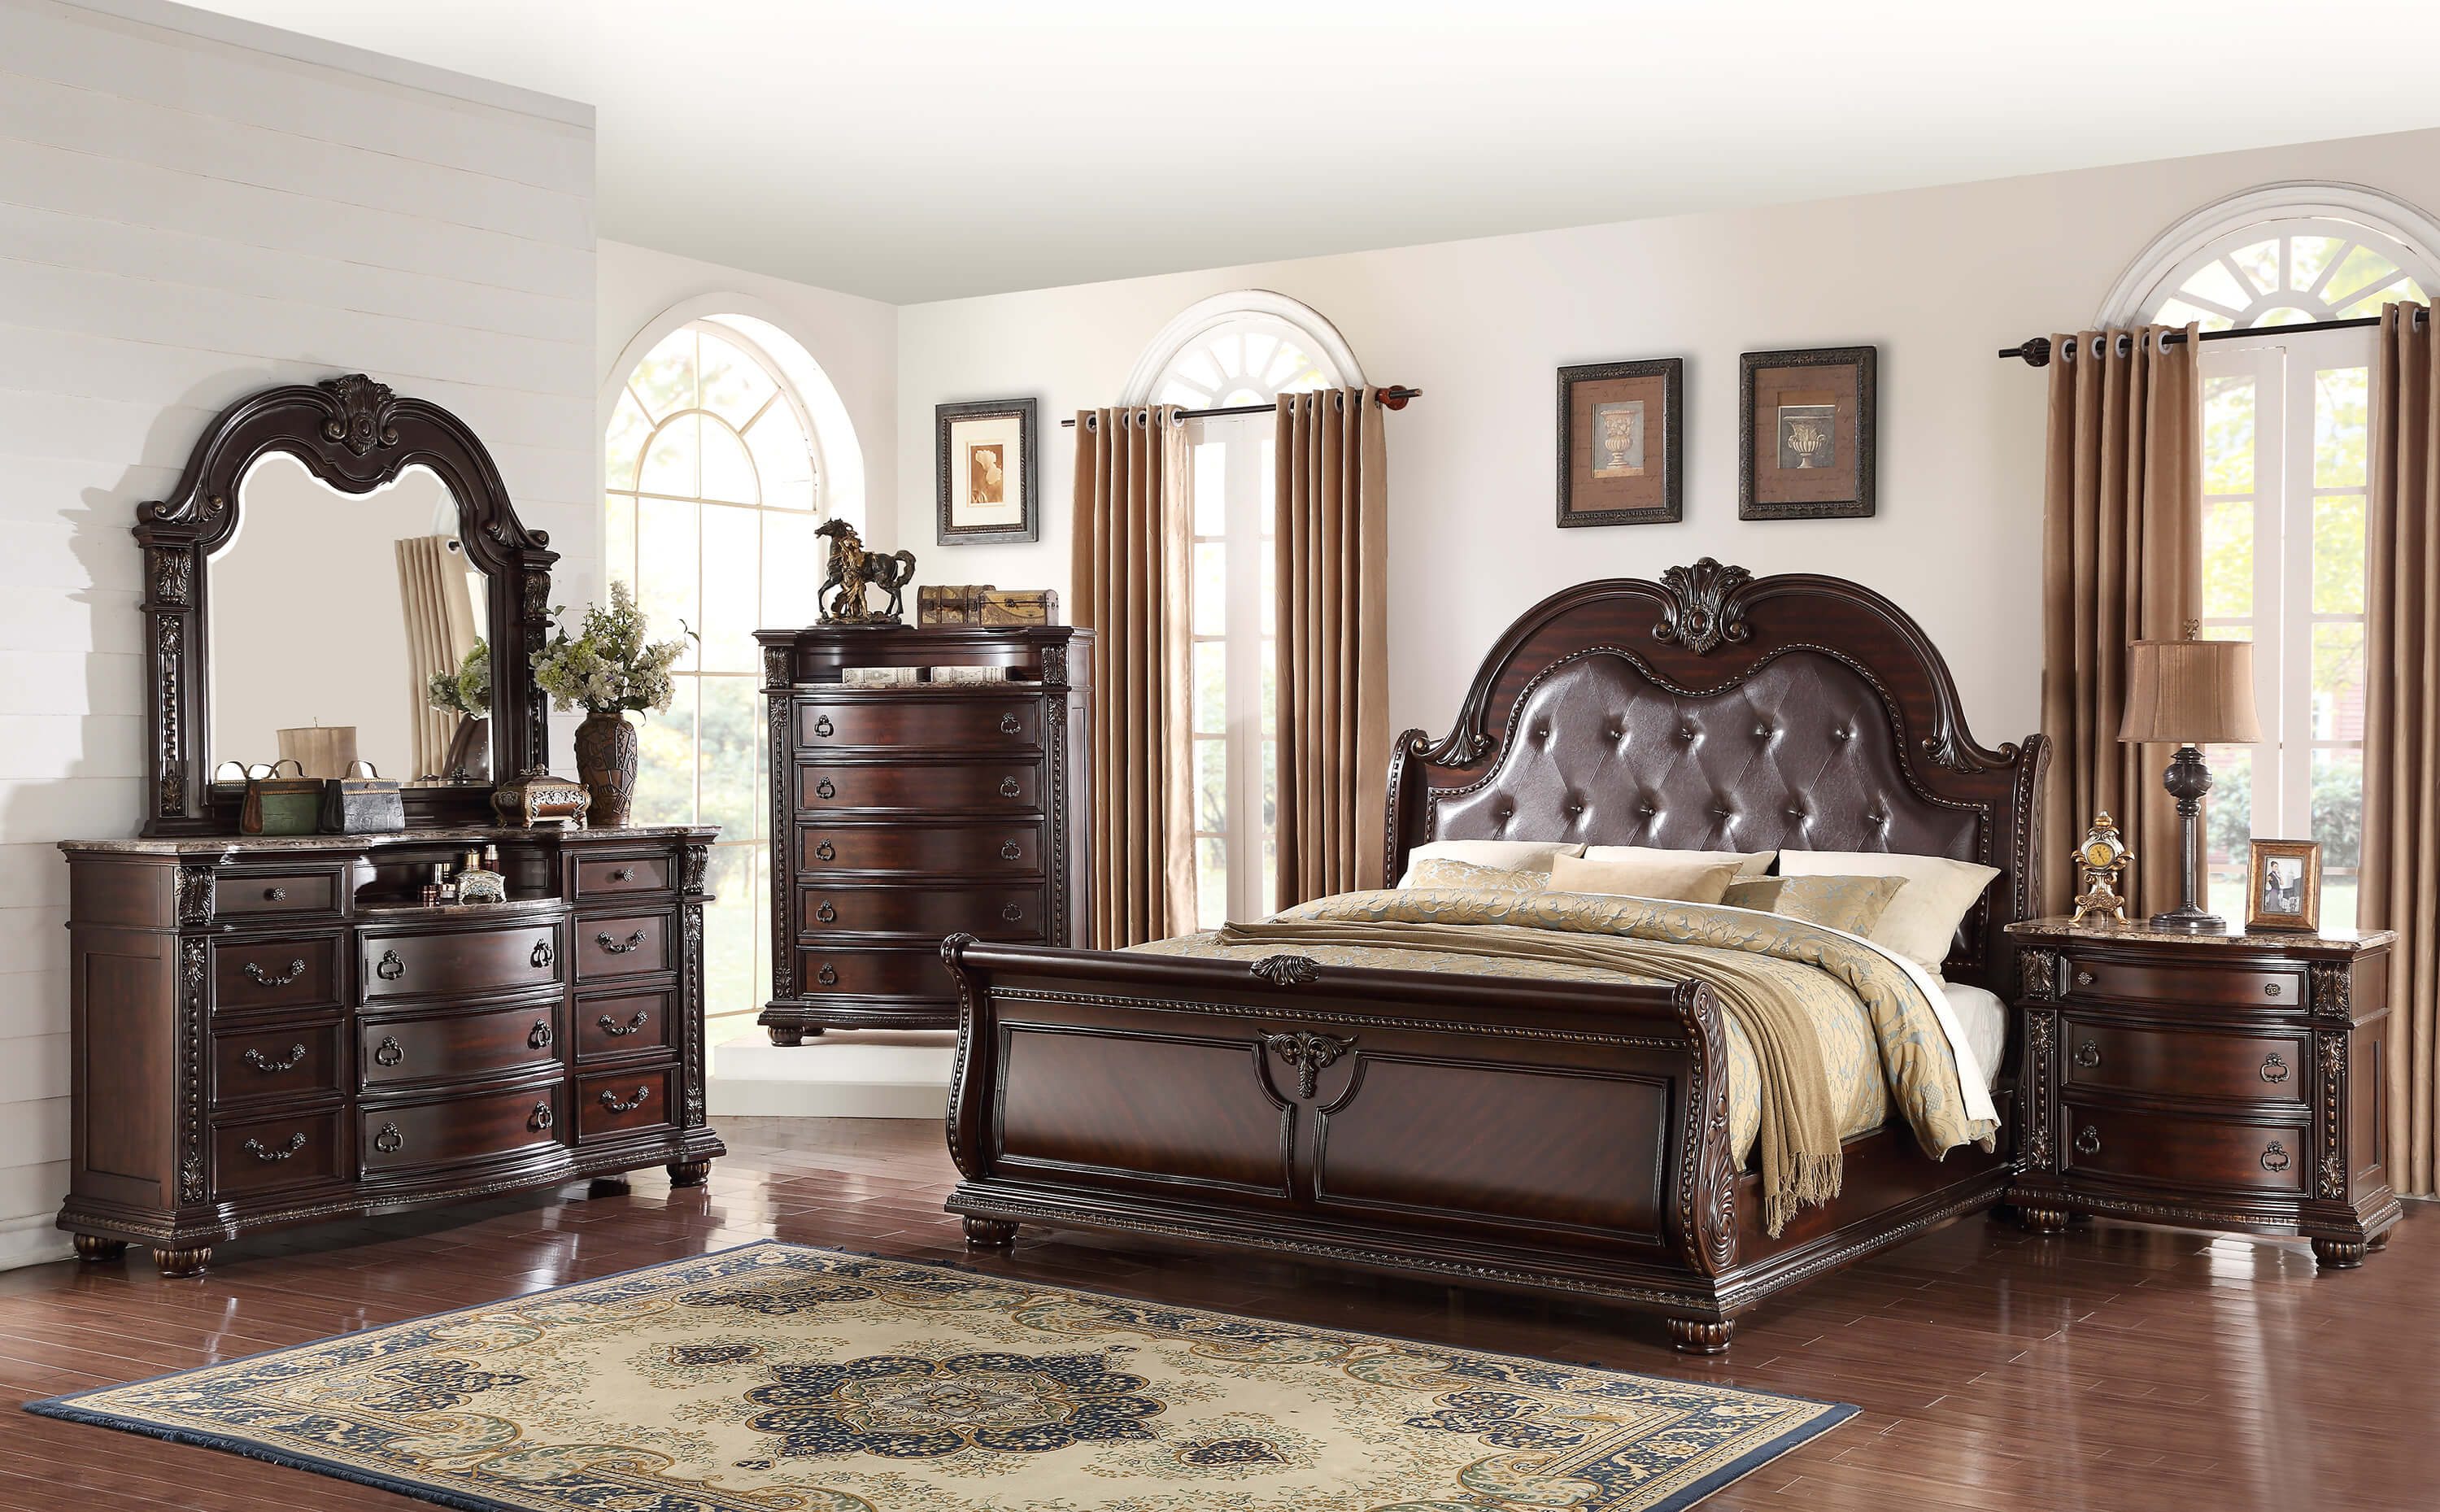 Stanley marble top bedroom set furniture sets